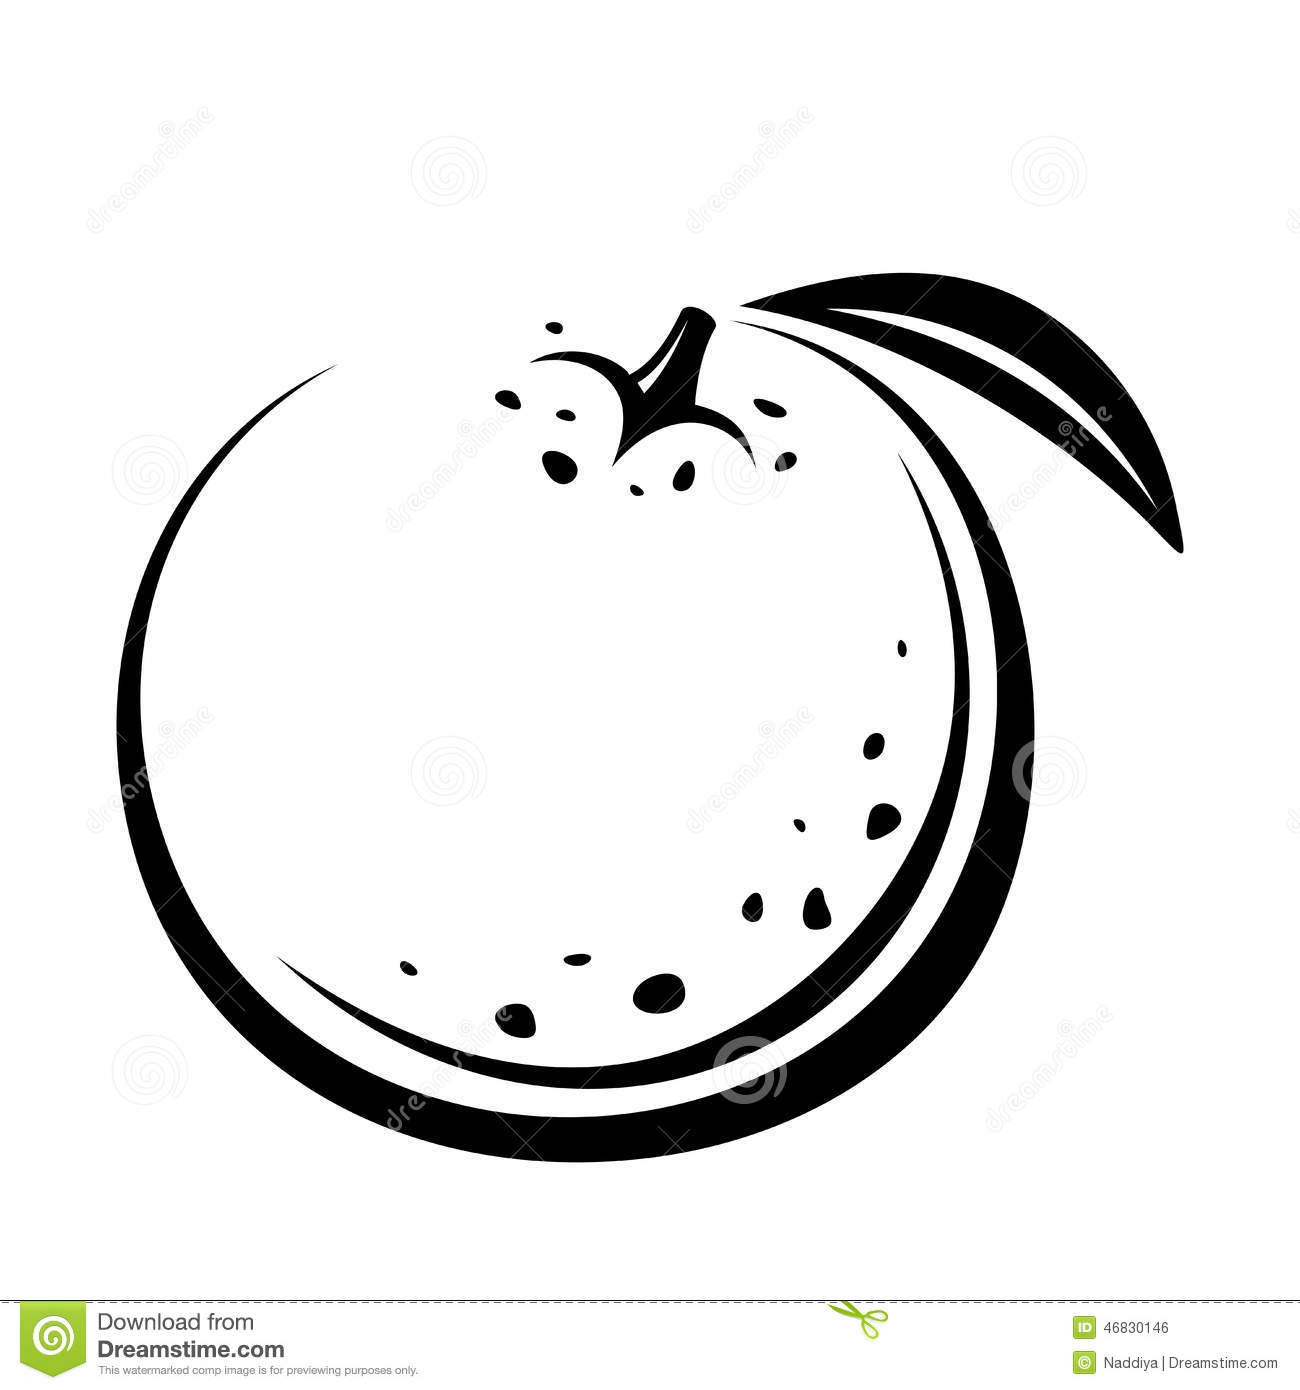 Orange Fruit  Vector Black Contour Drawing  Stock Vector